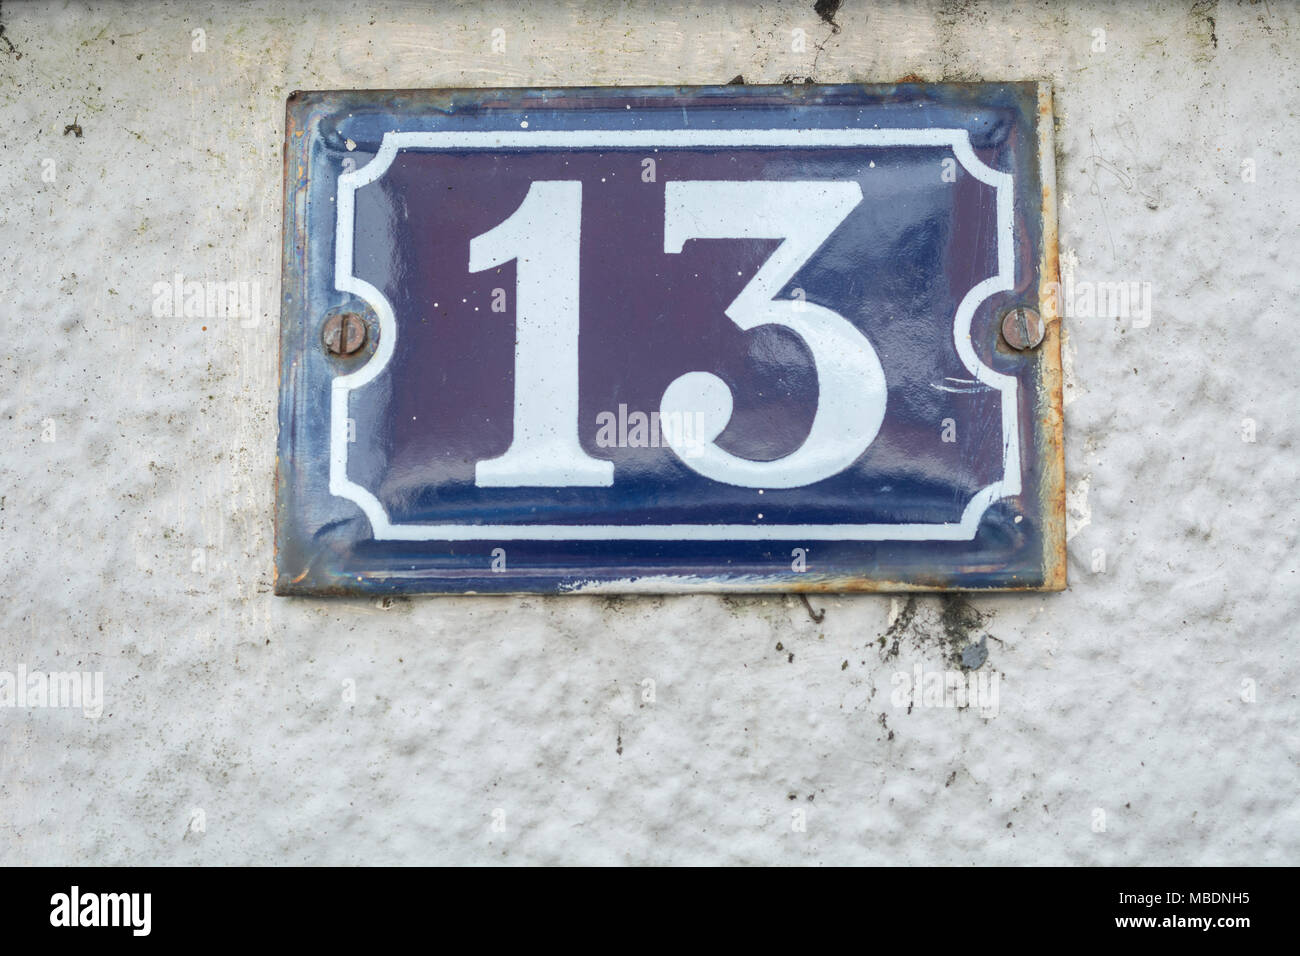 Enamel house number - No. 13 (unlucky for some). Odd number. - Stock Image